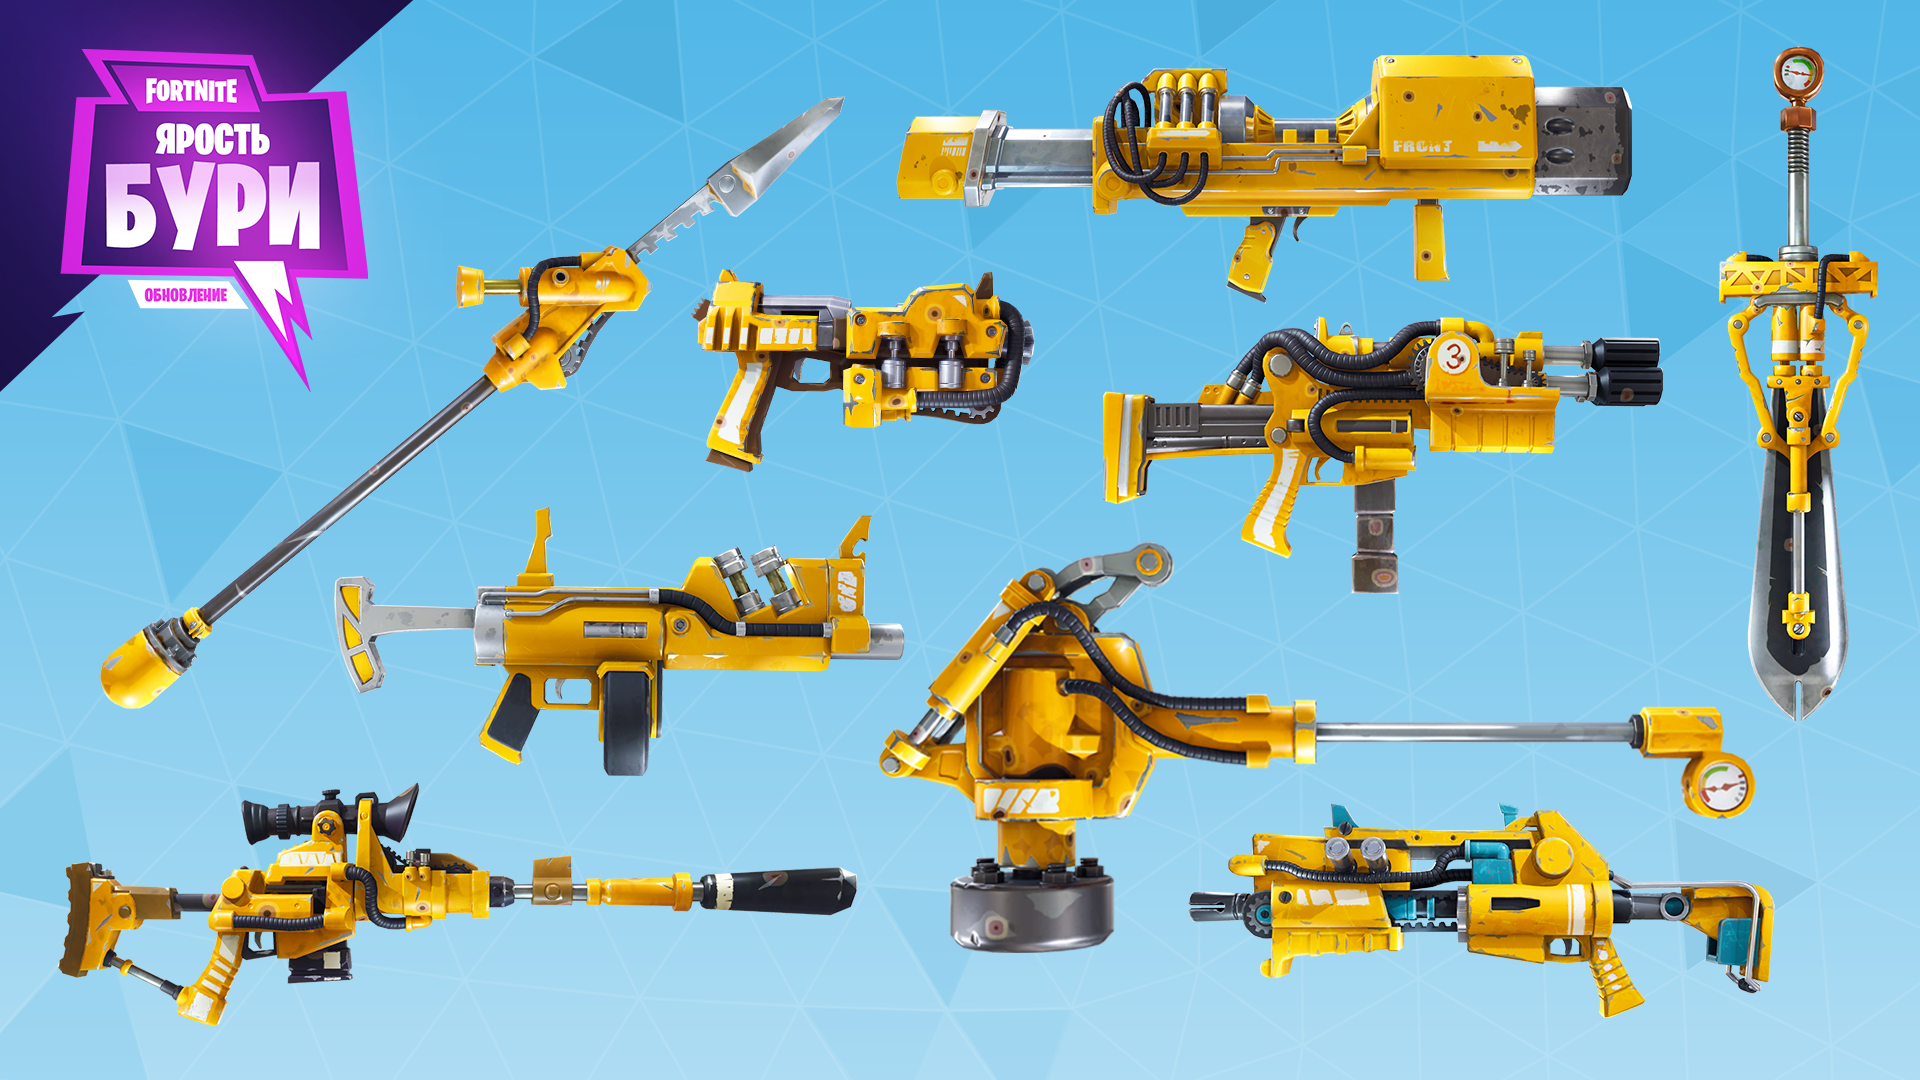 Fortnite%2Fblog%2Fsurvive-the-storm---release-notes%2FRUS_Hydraulic-Weapons-1920x1080-58c8b100f062f8dc90c11c9534e1299fc2e5377e